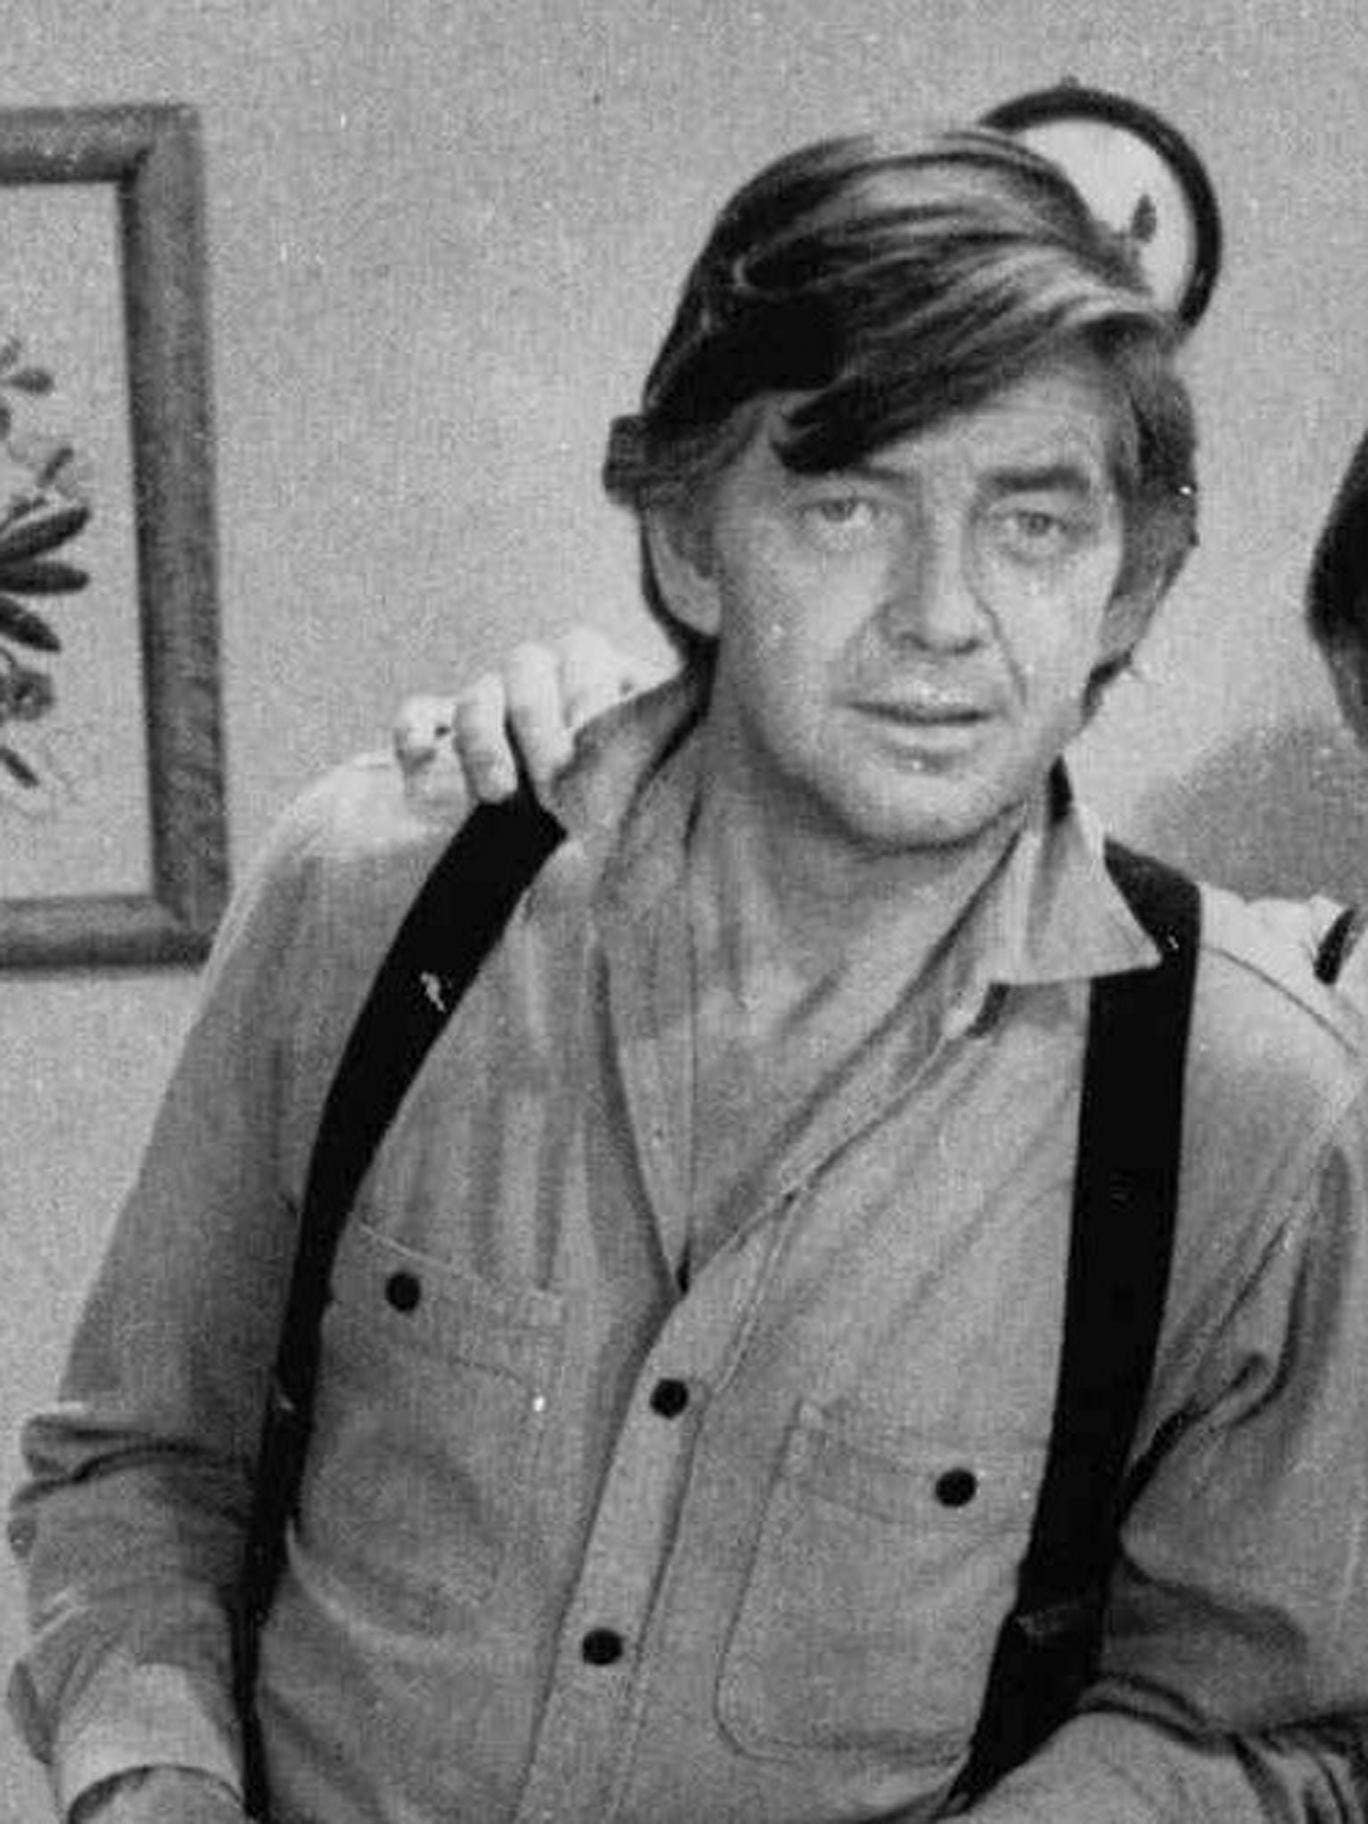 Ralph Waite in 'The Waltons' in 1975